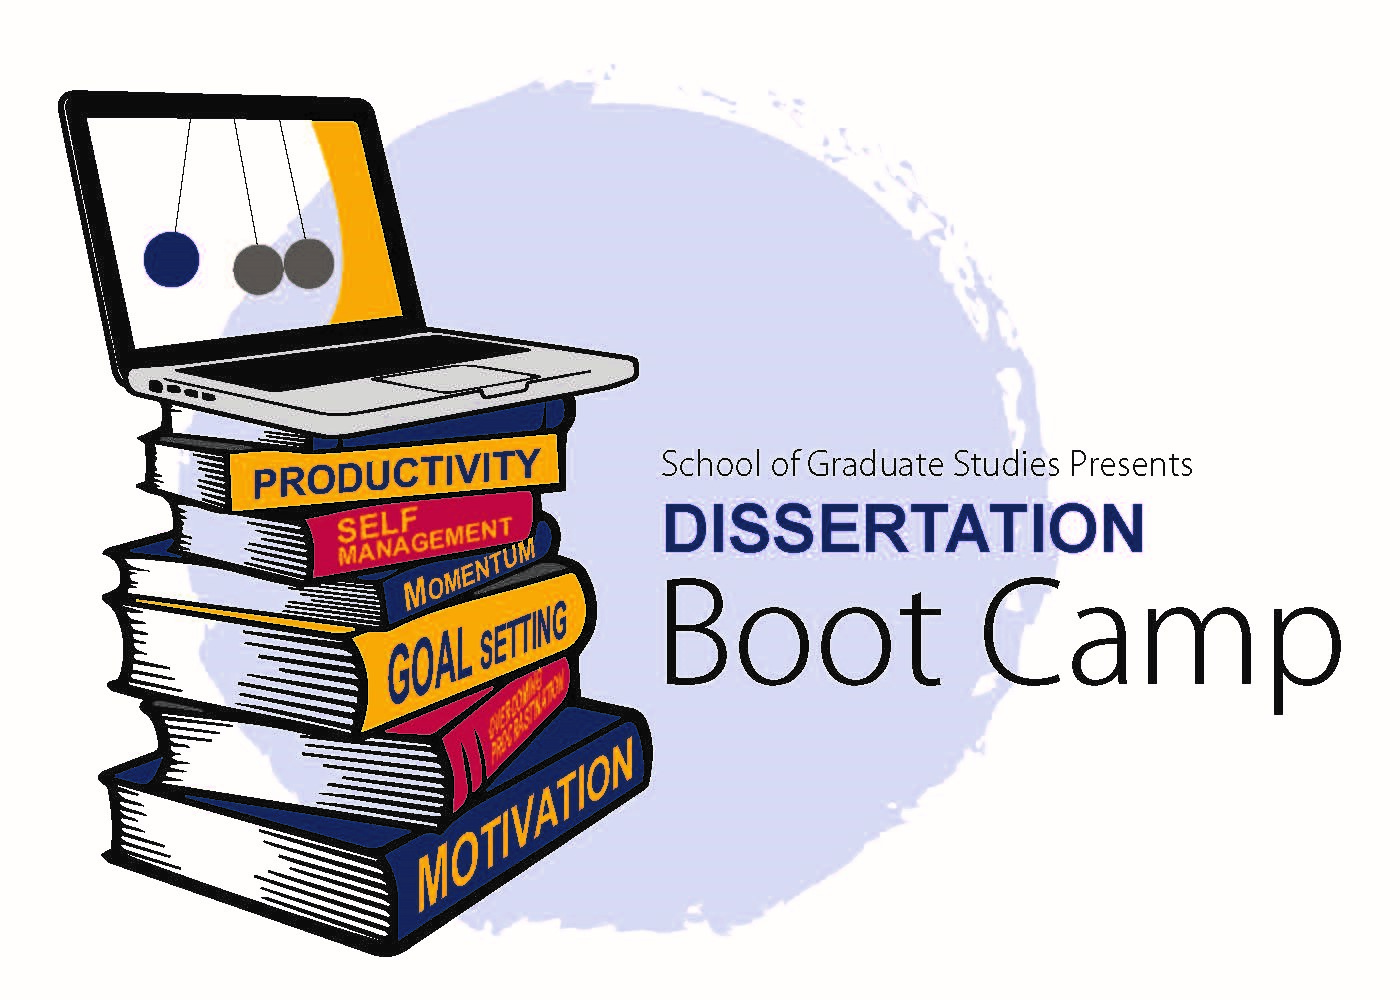 Online dissertation writing boot camp